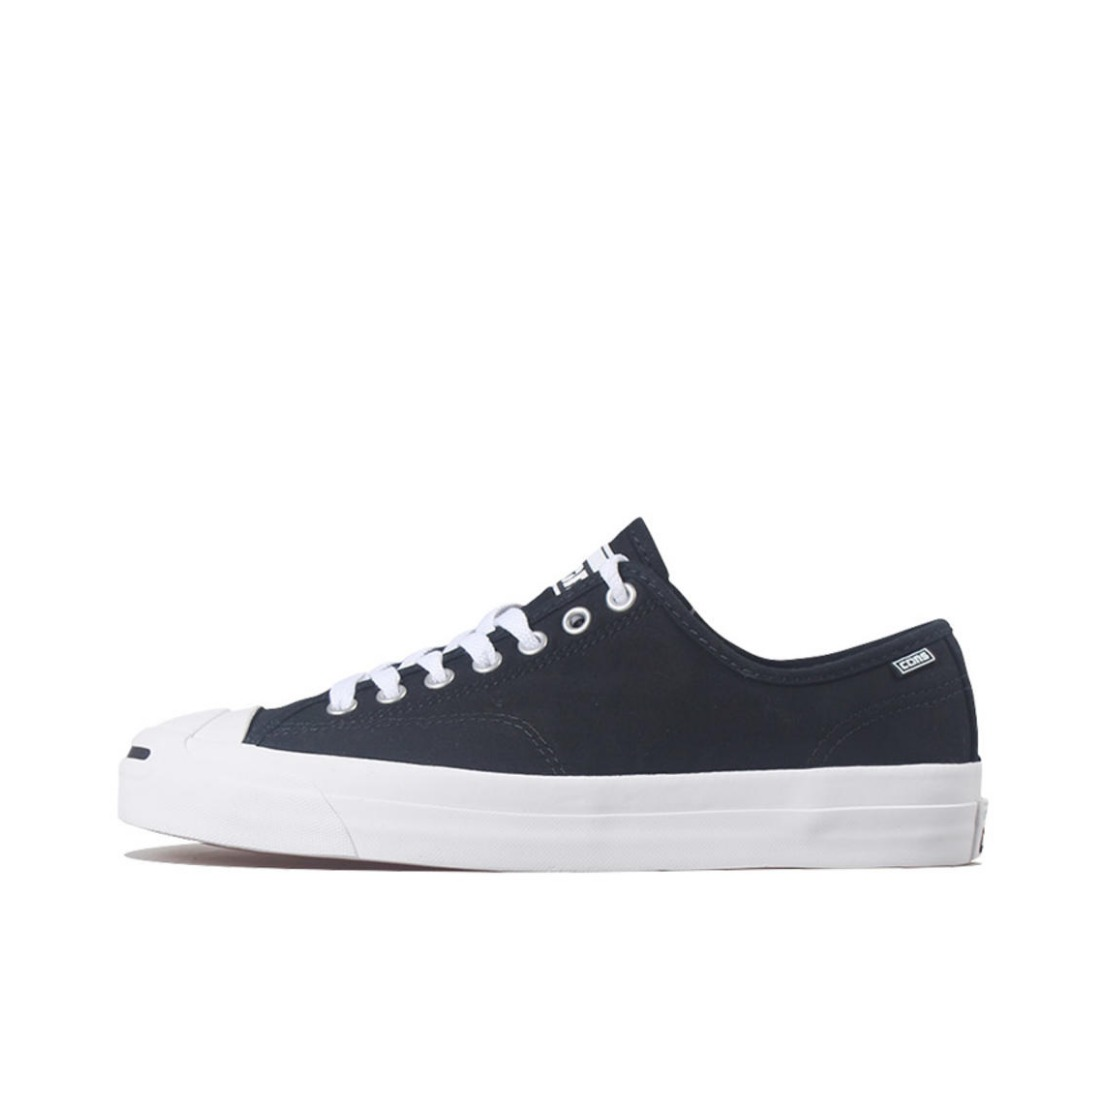 Converse Jack Purcell 黑白帆布 领券满减20